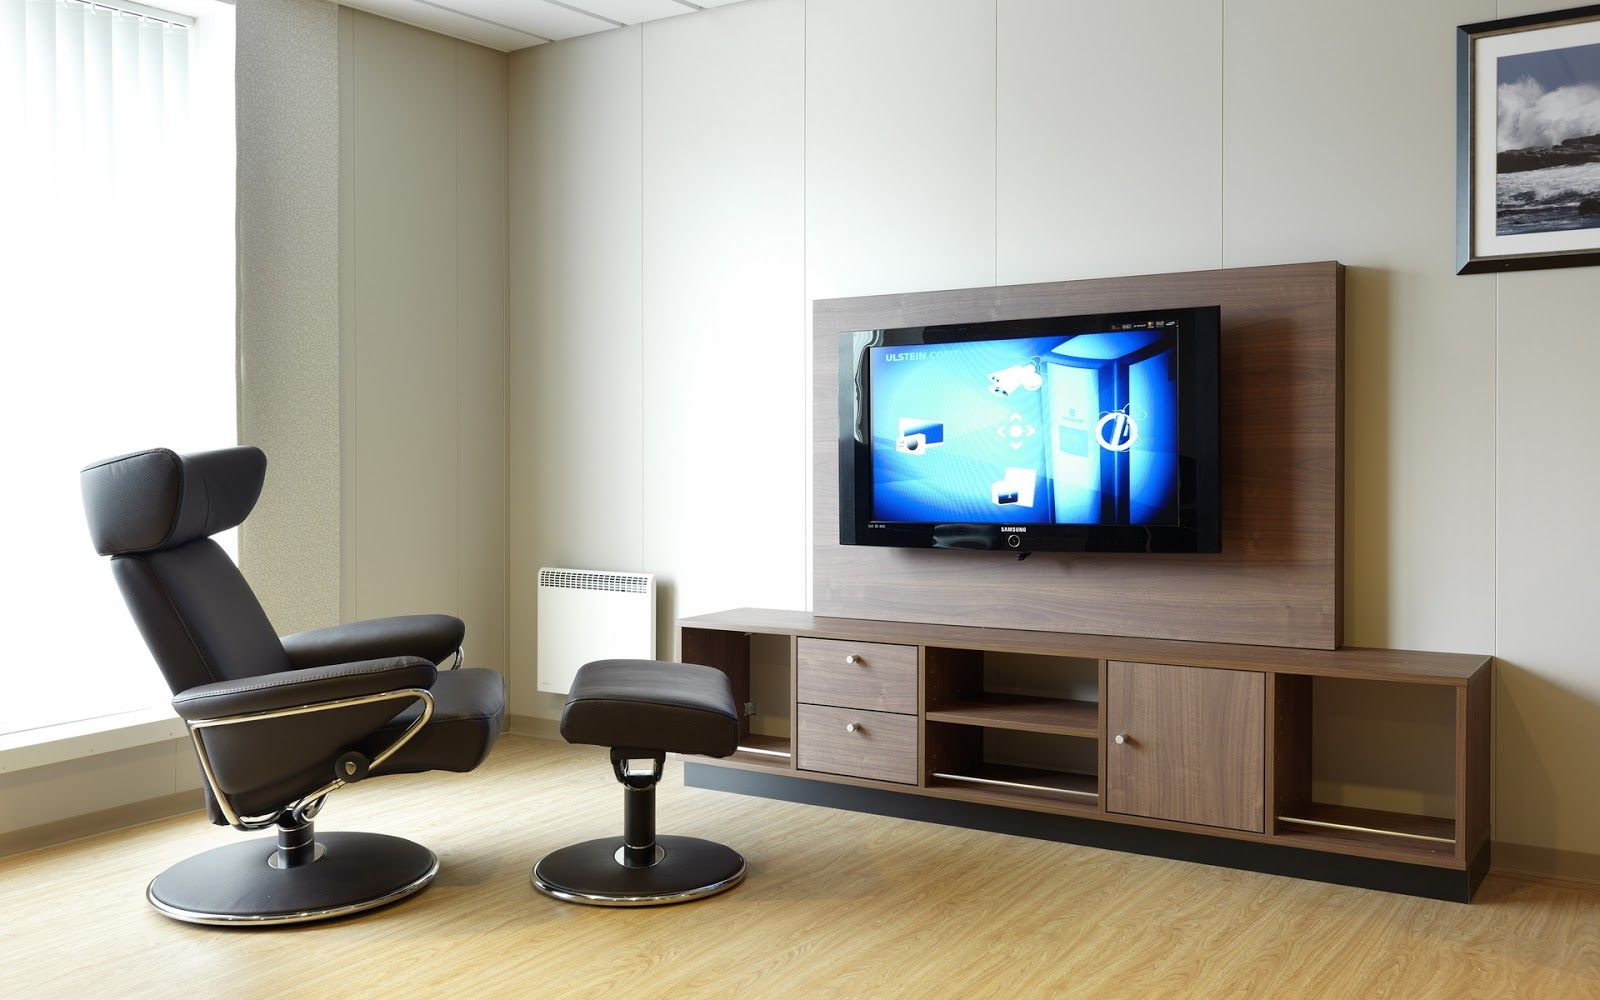 Magnificent TV Room Interior Design 1600 x 1000 · 198 kB · jpeg